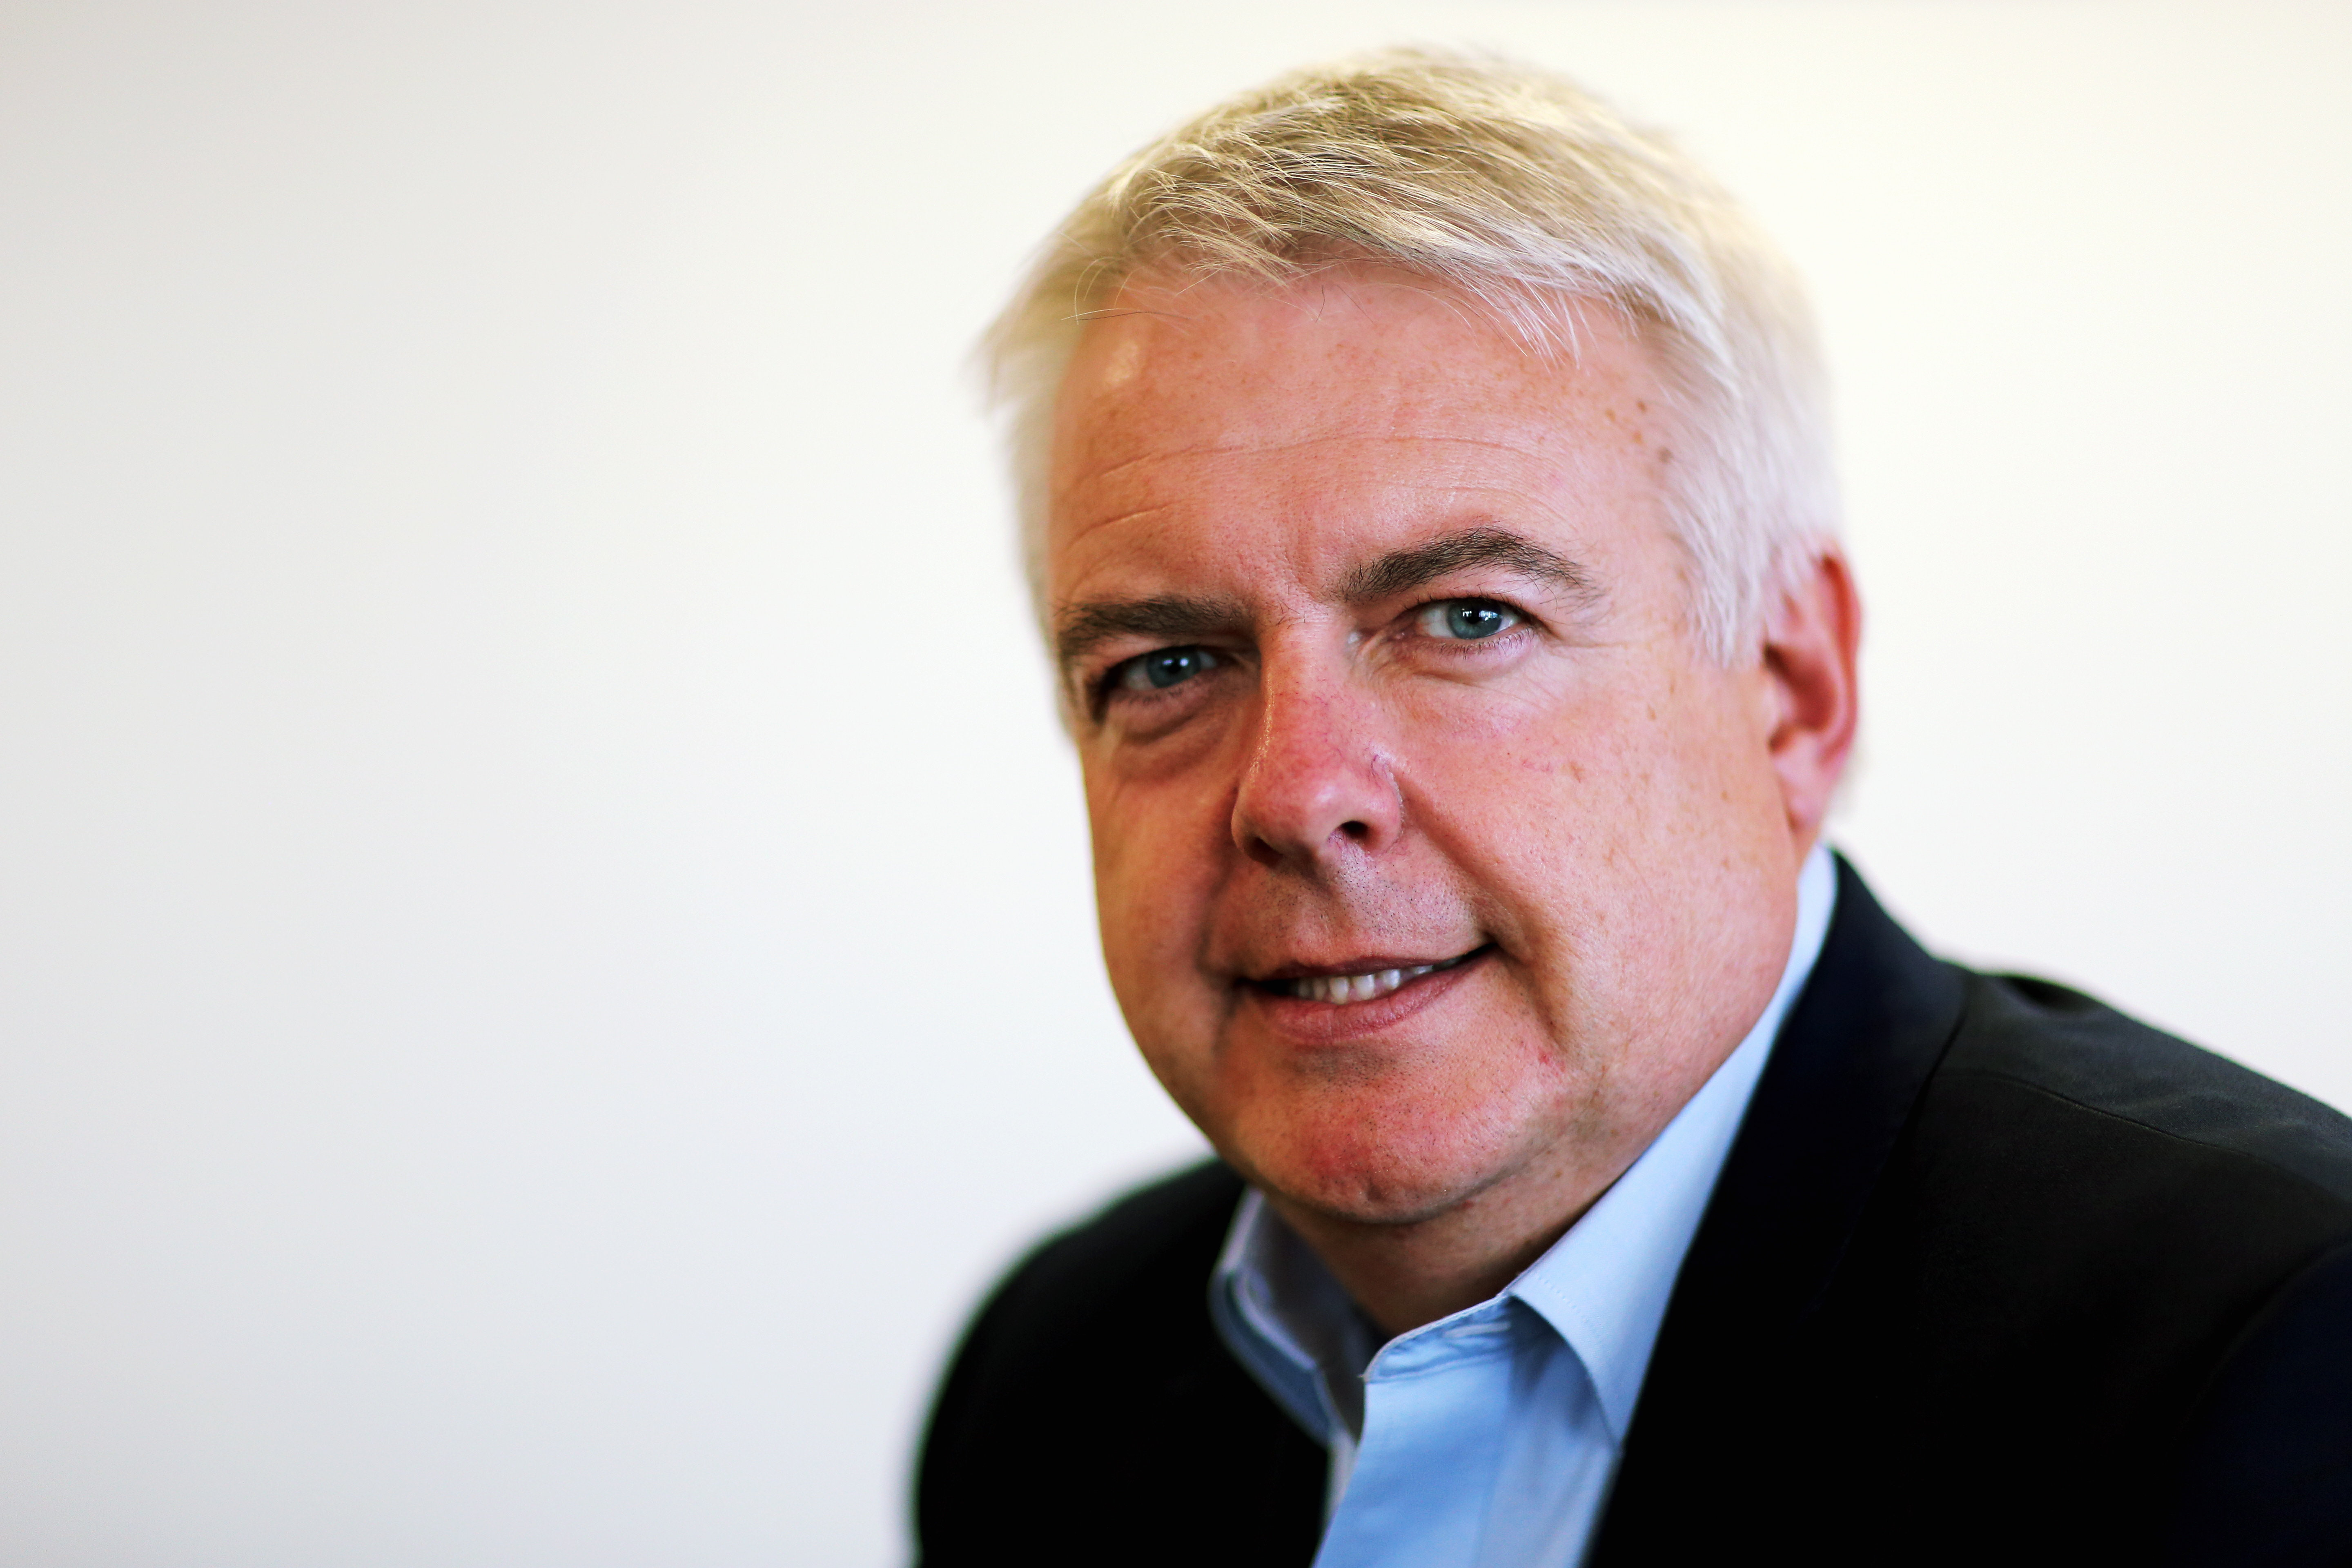 Mirst Minister for Wales Carwyn Jones in his office at the Ty Hywel building in Cardiff Bay, Wales, UK. STOCK PICTURE Re: First Minister for Wales Carwyn Jones has been having meetings with members of Welsh Labour.